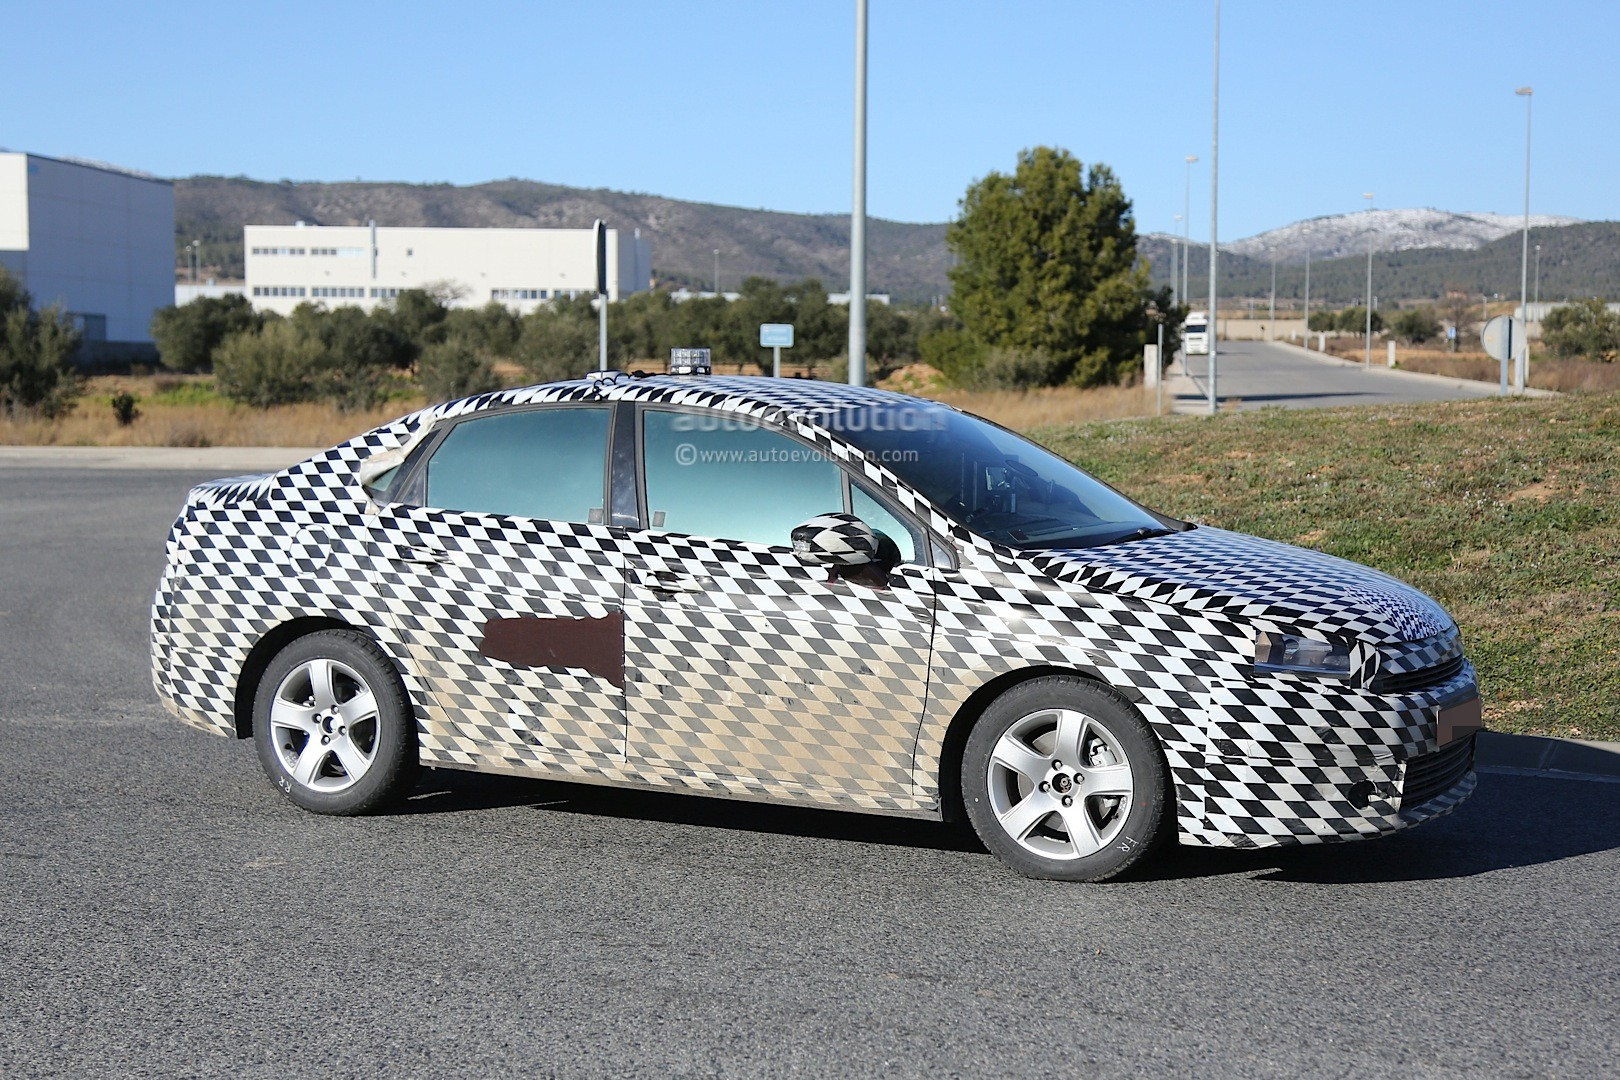 2015 - [Citroën] C4 C-Quatre - Page 2 Mystery-citroen-compact-sedan-spied-testing-in-spain-could-be-the-new-c4-lunge_4